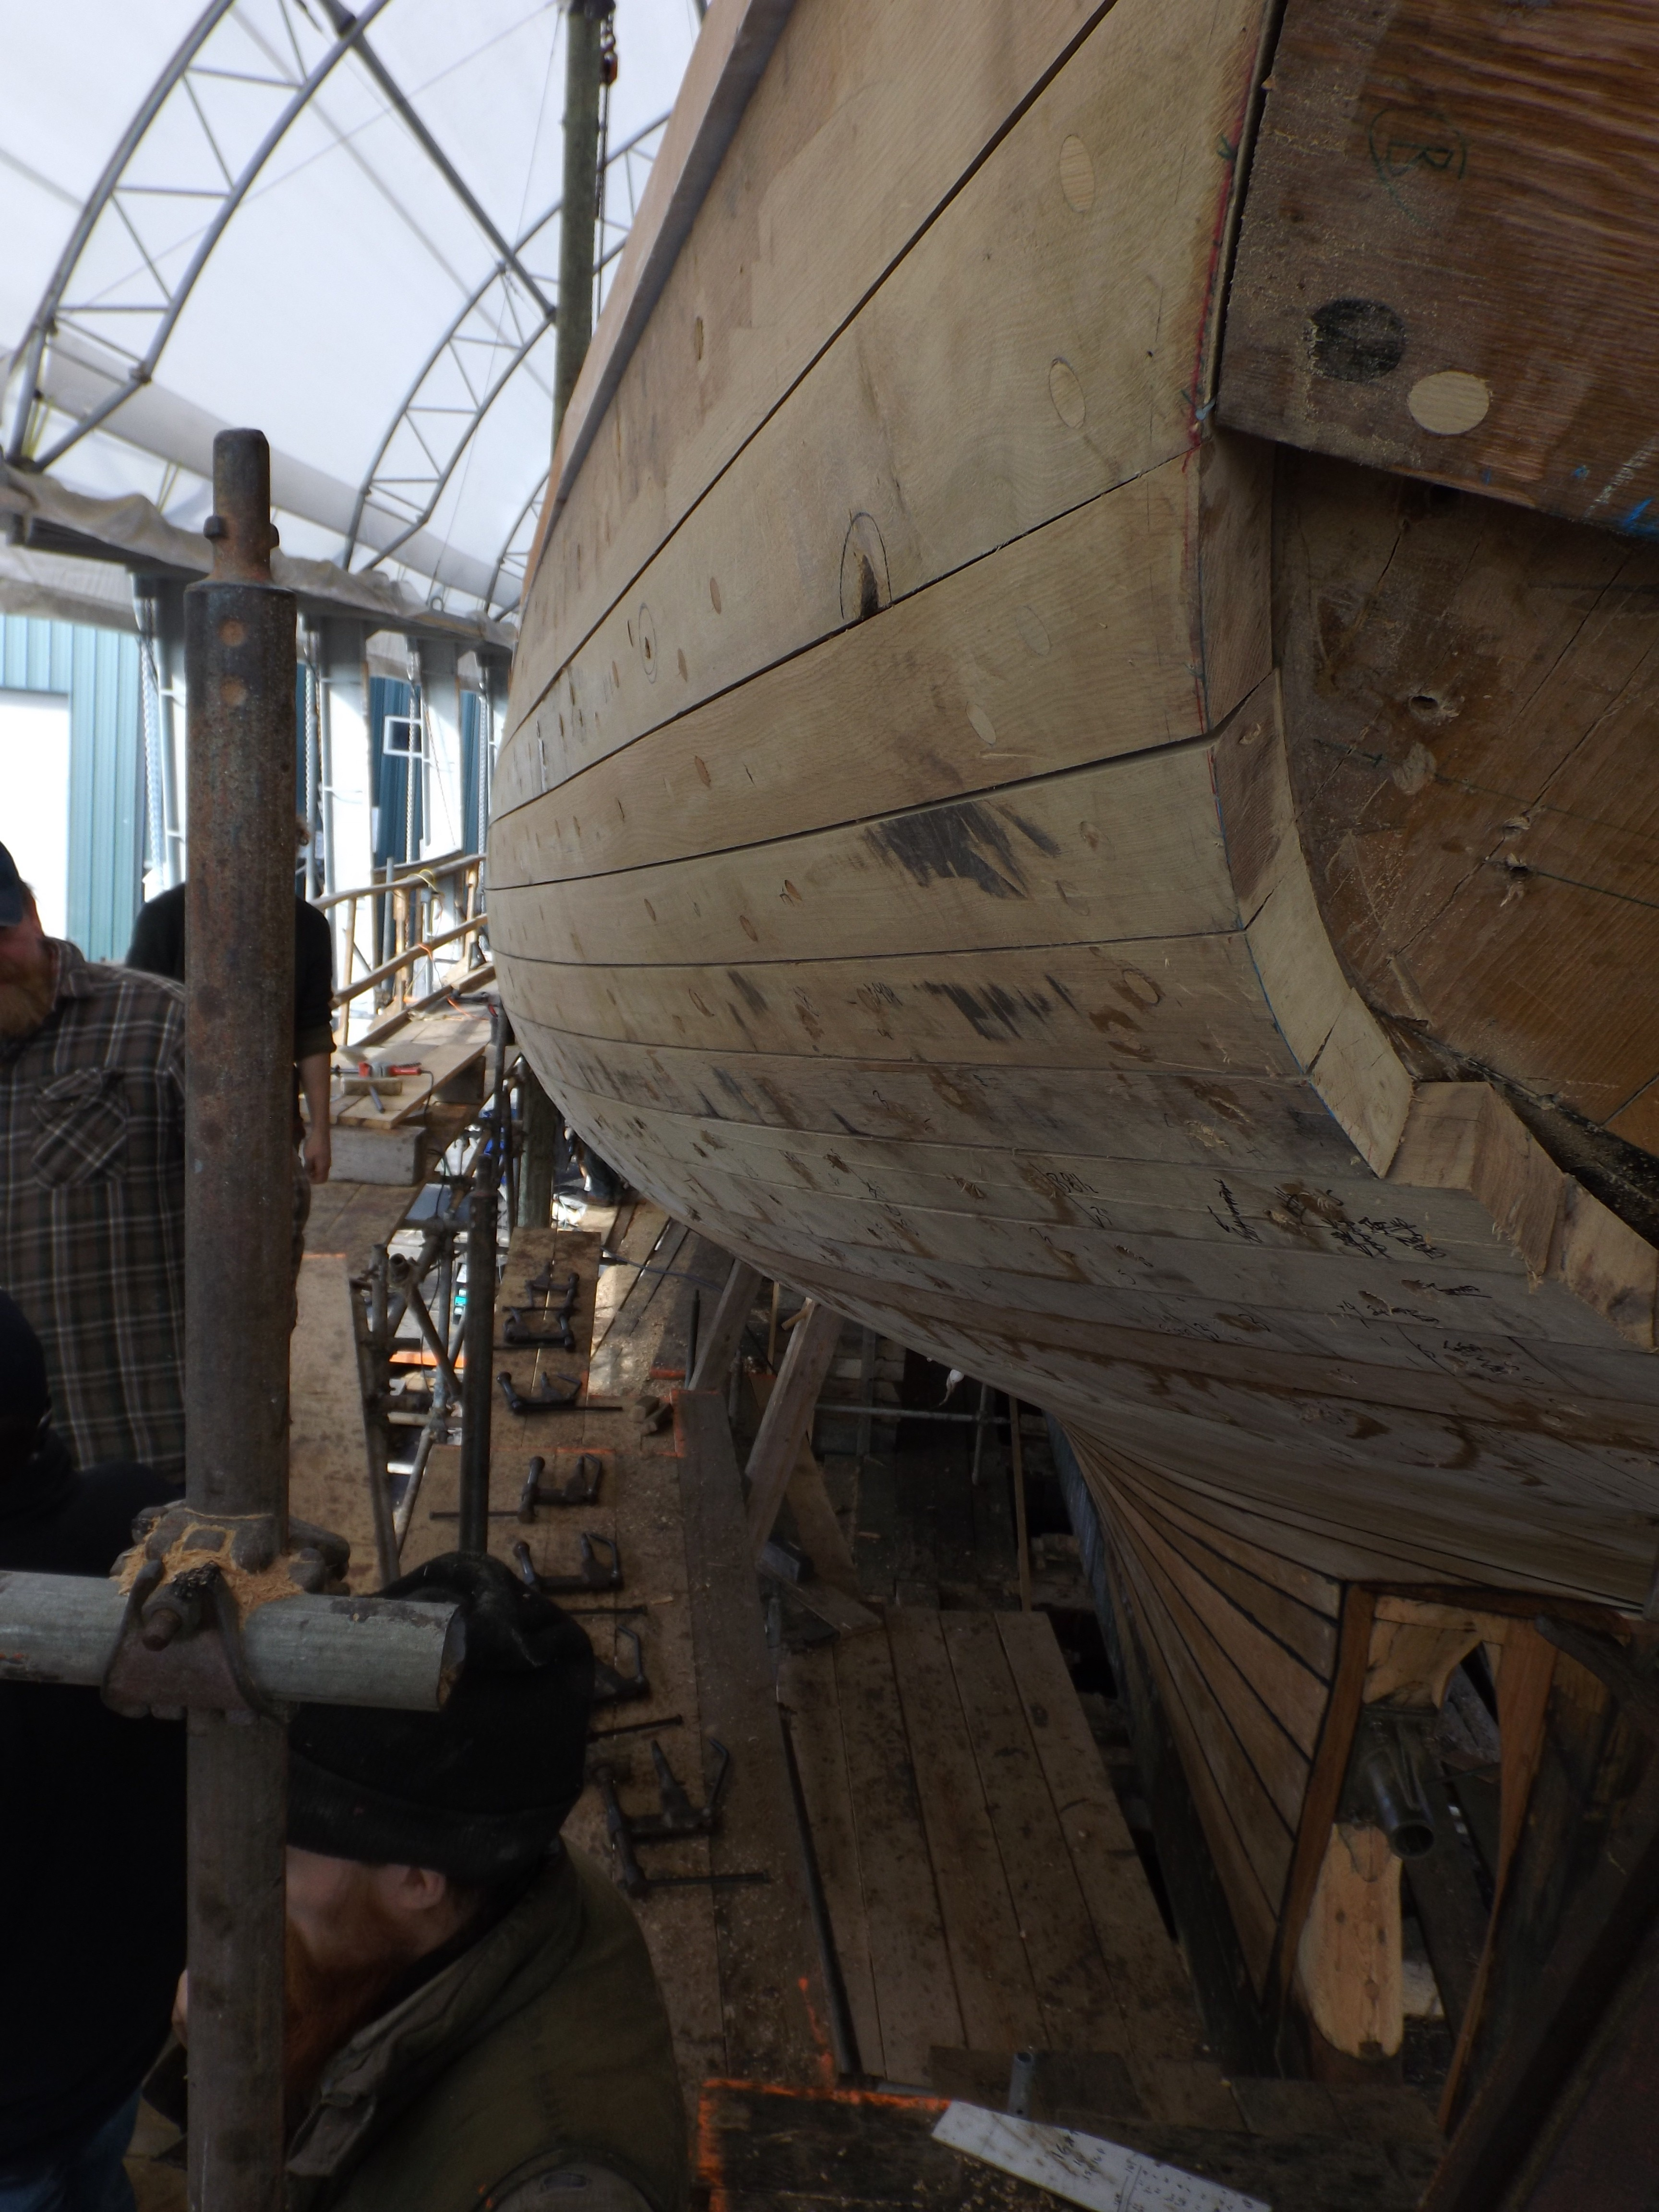 The ends of the last few planks will be trimmed and then the transom can be finished.